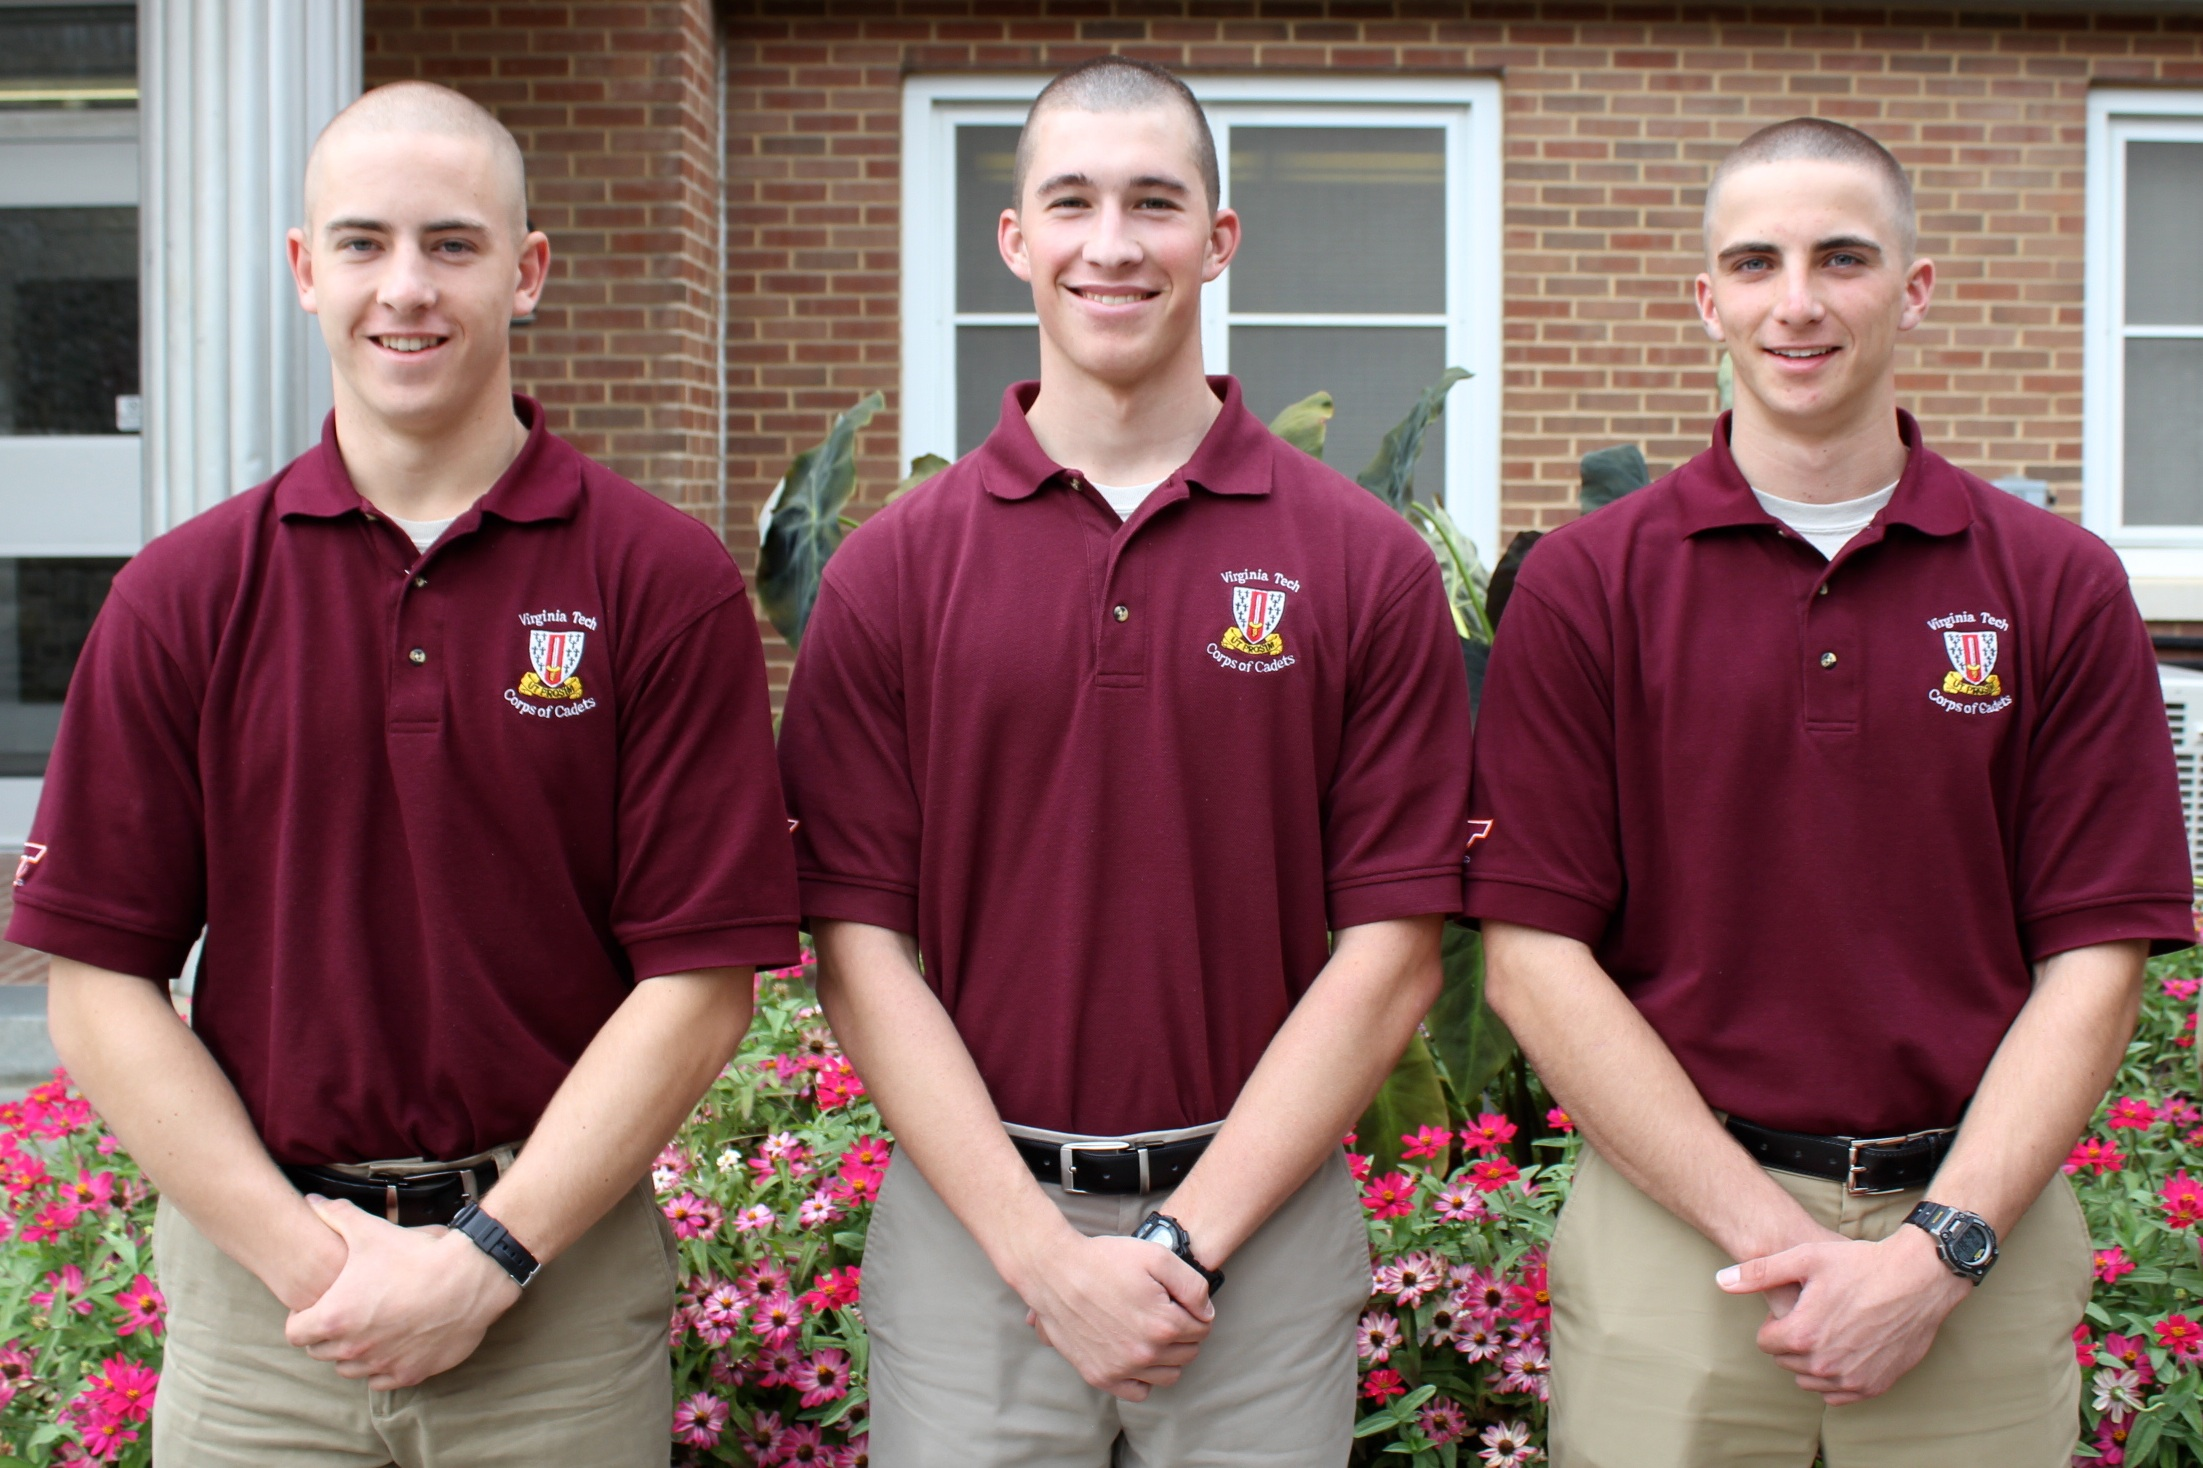 From left to right are Cadets Andrew Bergman, Richard Daum, and Andrew Greenwood standing in front of Brodie Hall.